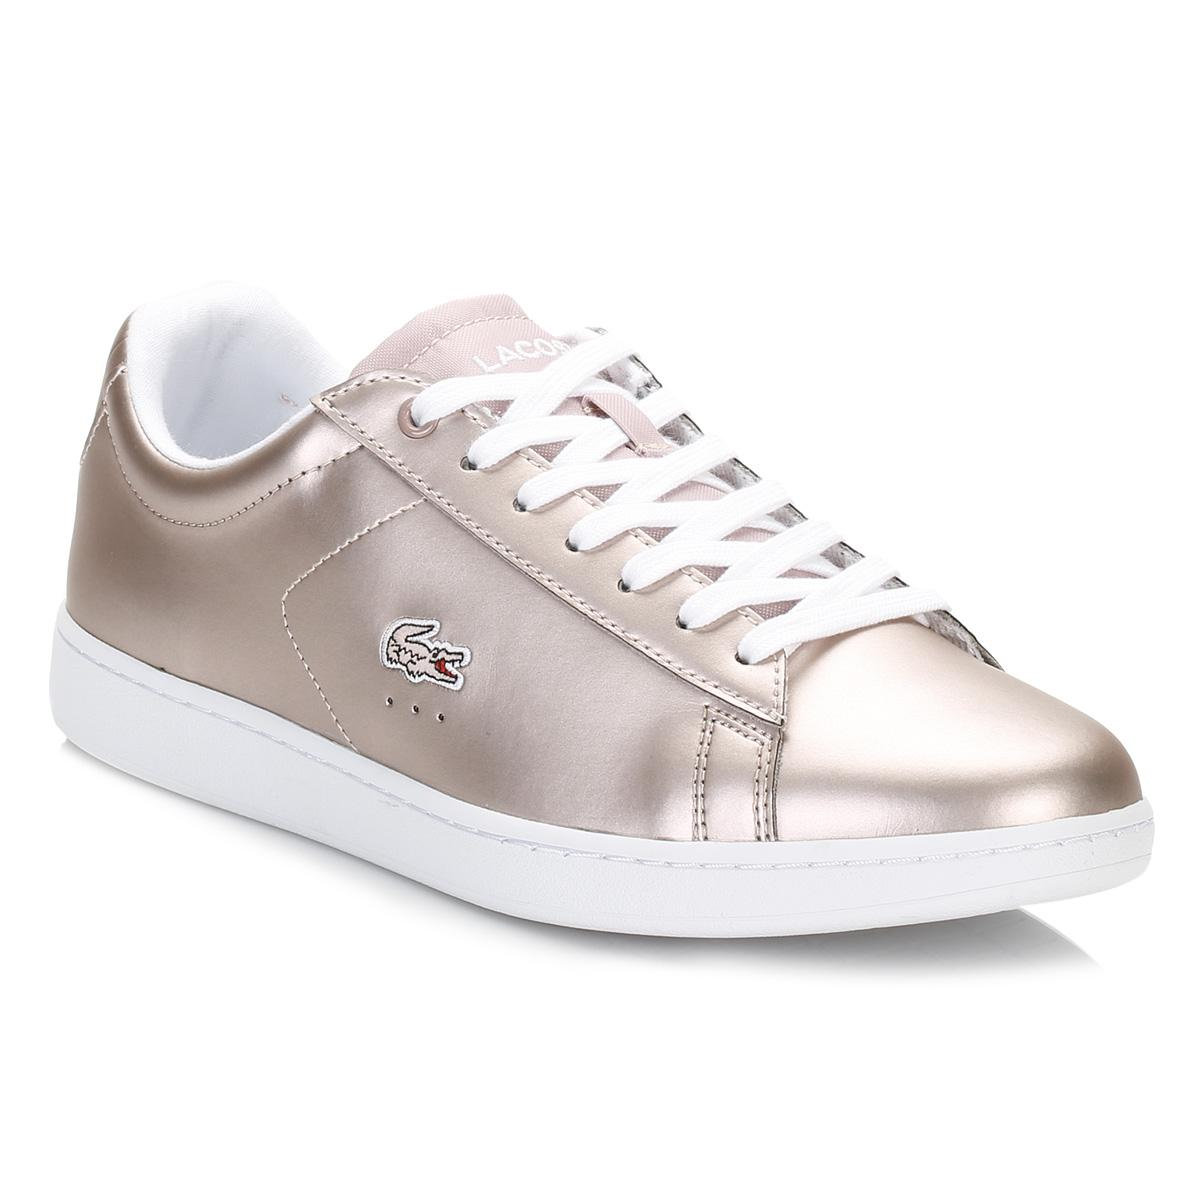 54c15906f Lyst - Lacoste Womens Light Pink Carnaby Evo 117 3 Spw Trainers in Pink